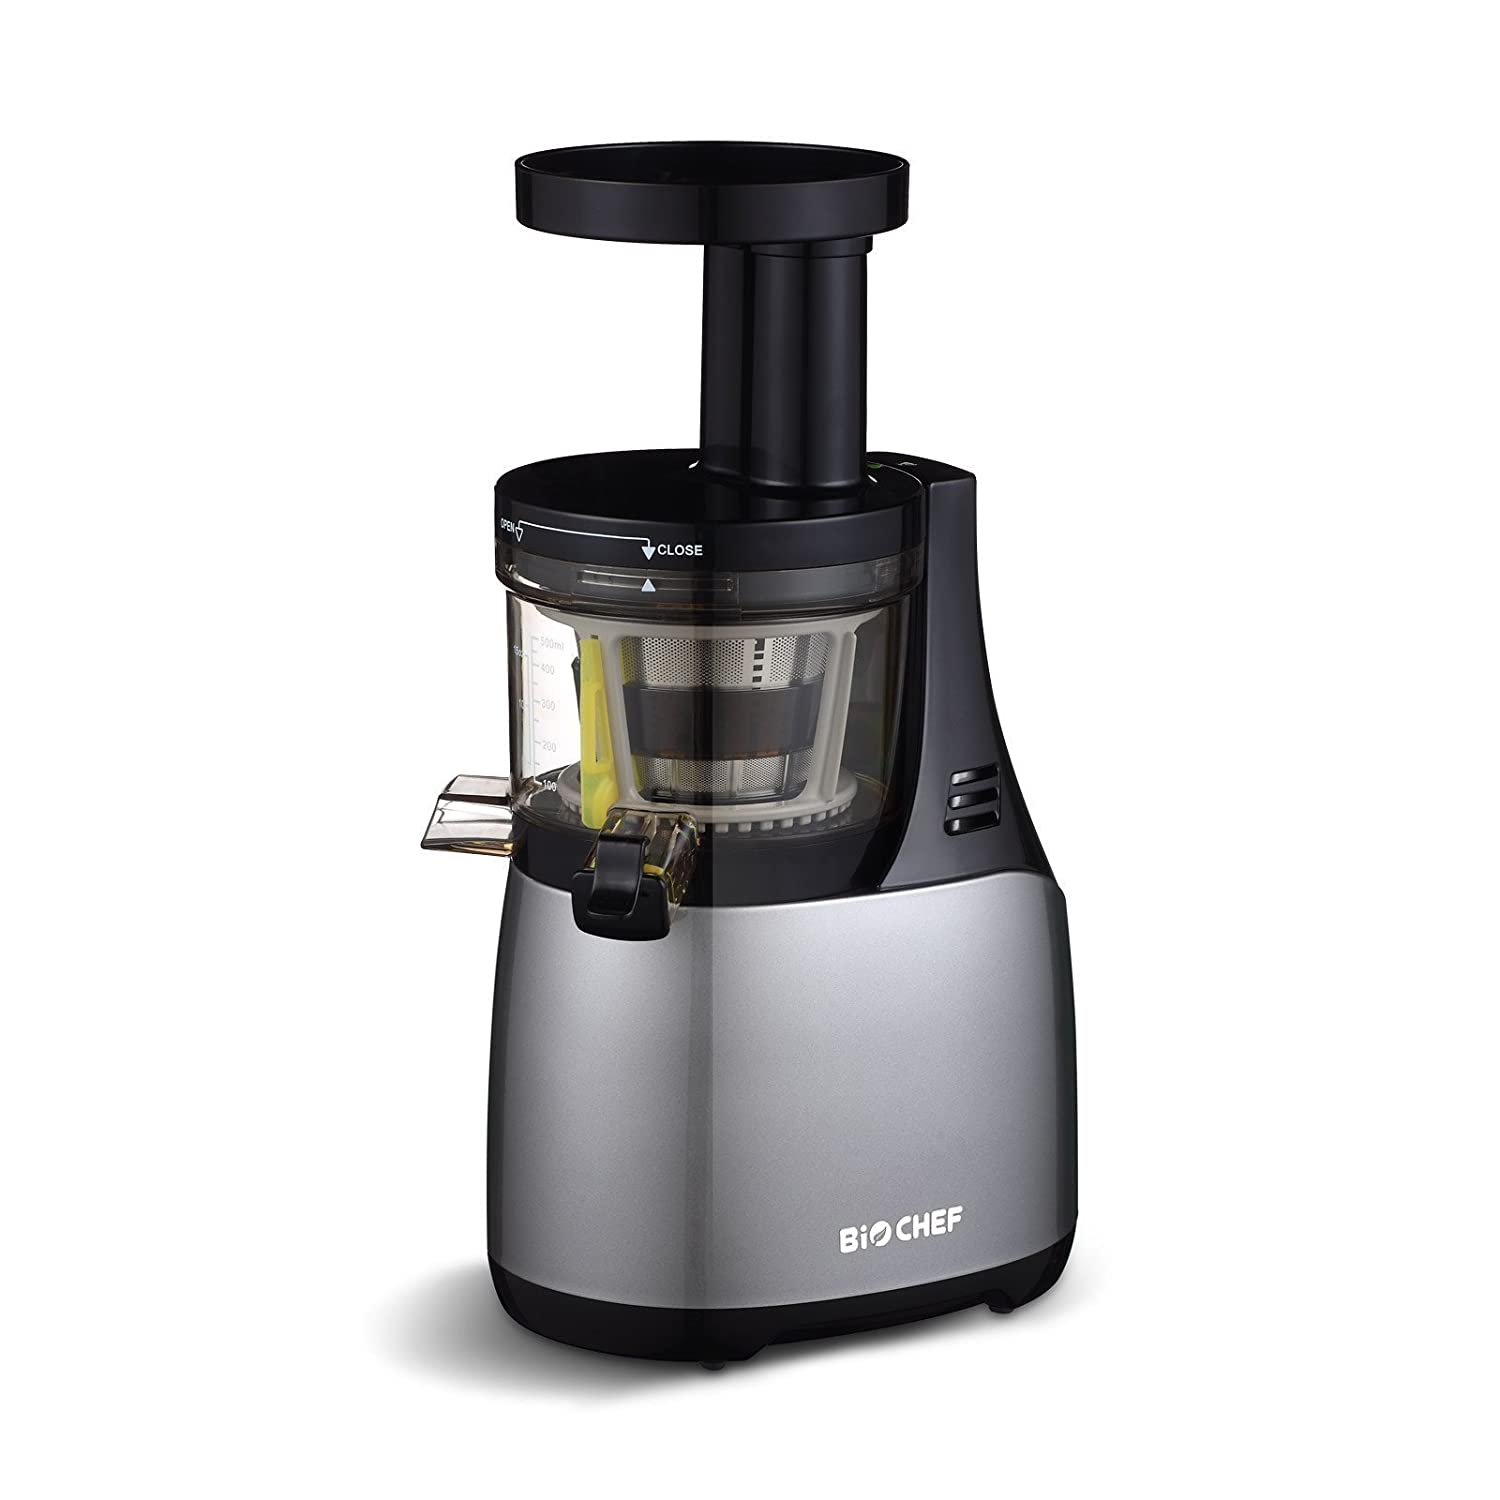 BioChef Synergy Slow Juicer, 150W, Masticating Fruit & Vegetable Slow Juicer, Quiet Motor with 10 Year Warranty (Silver)